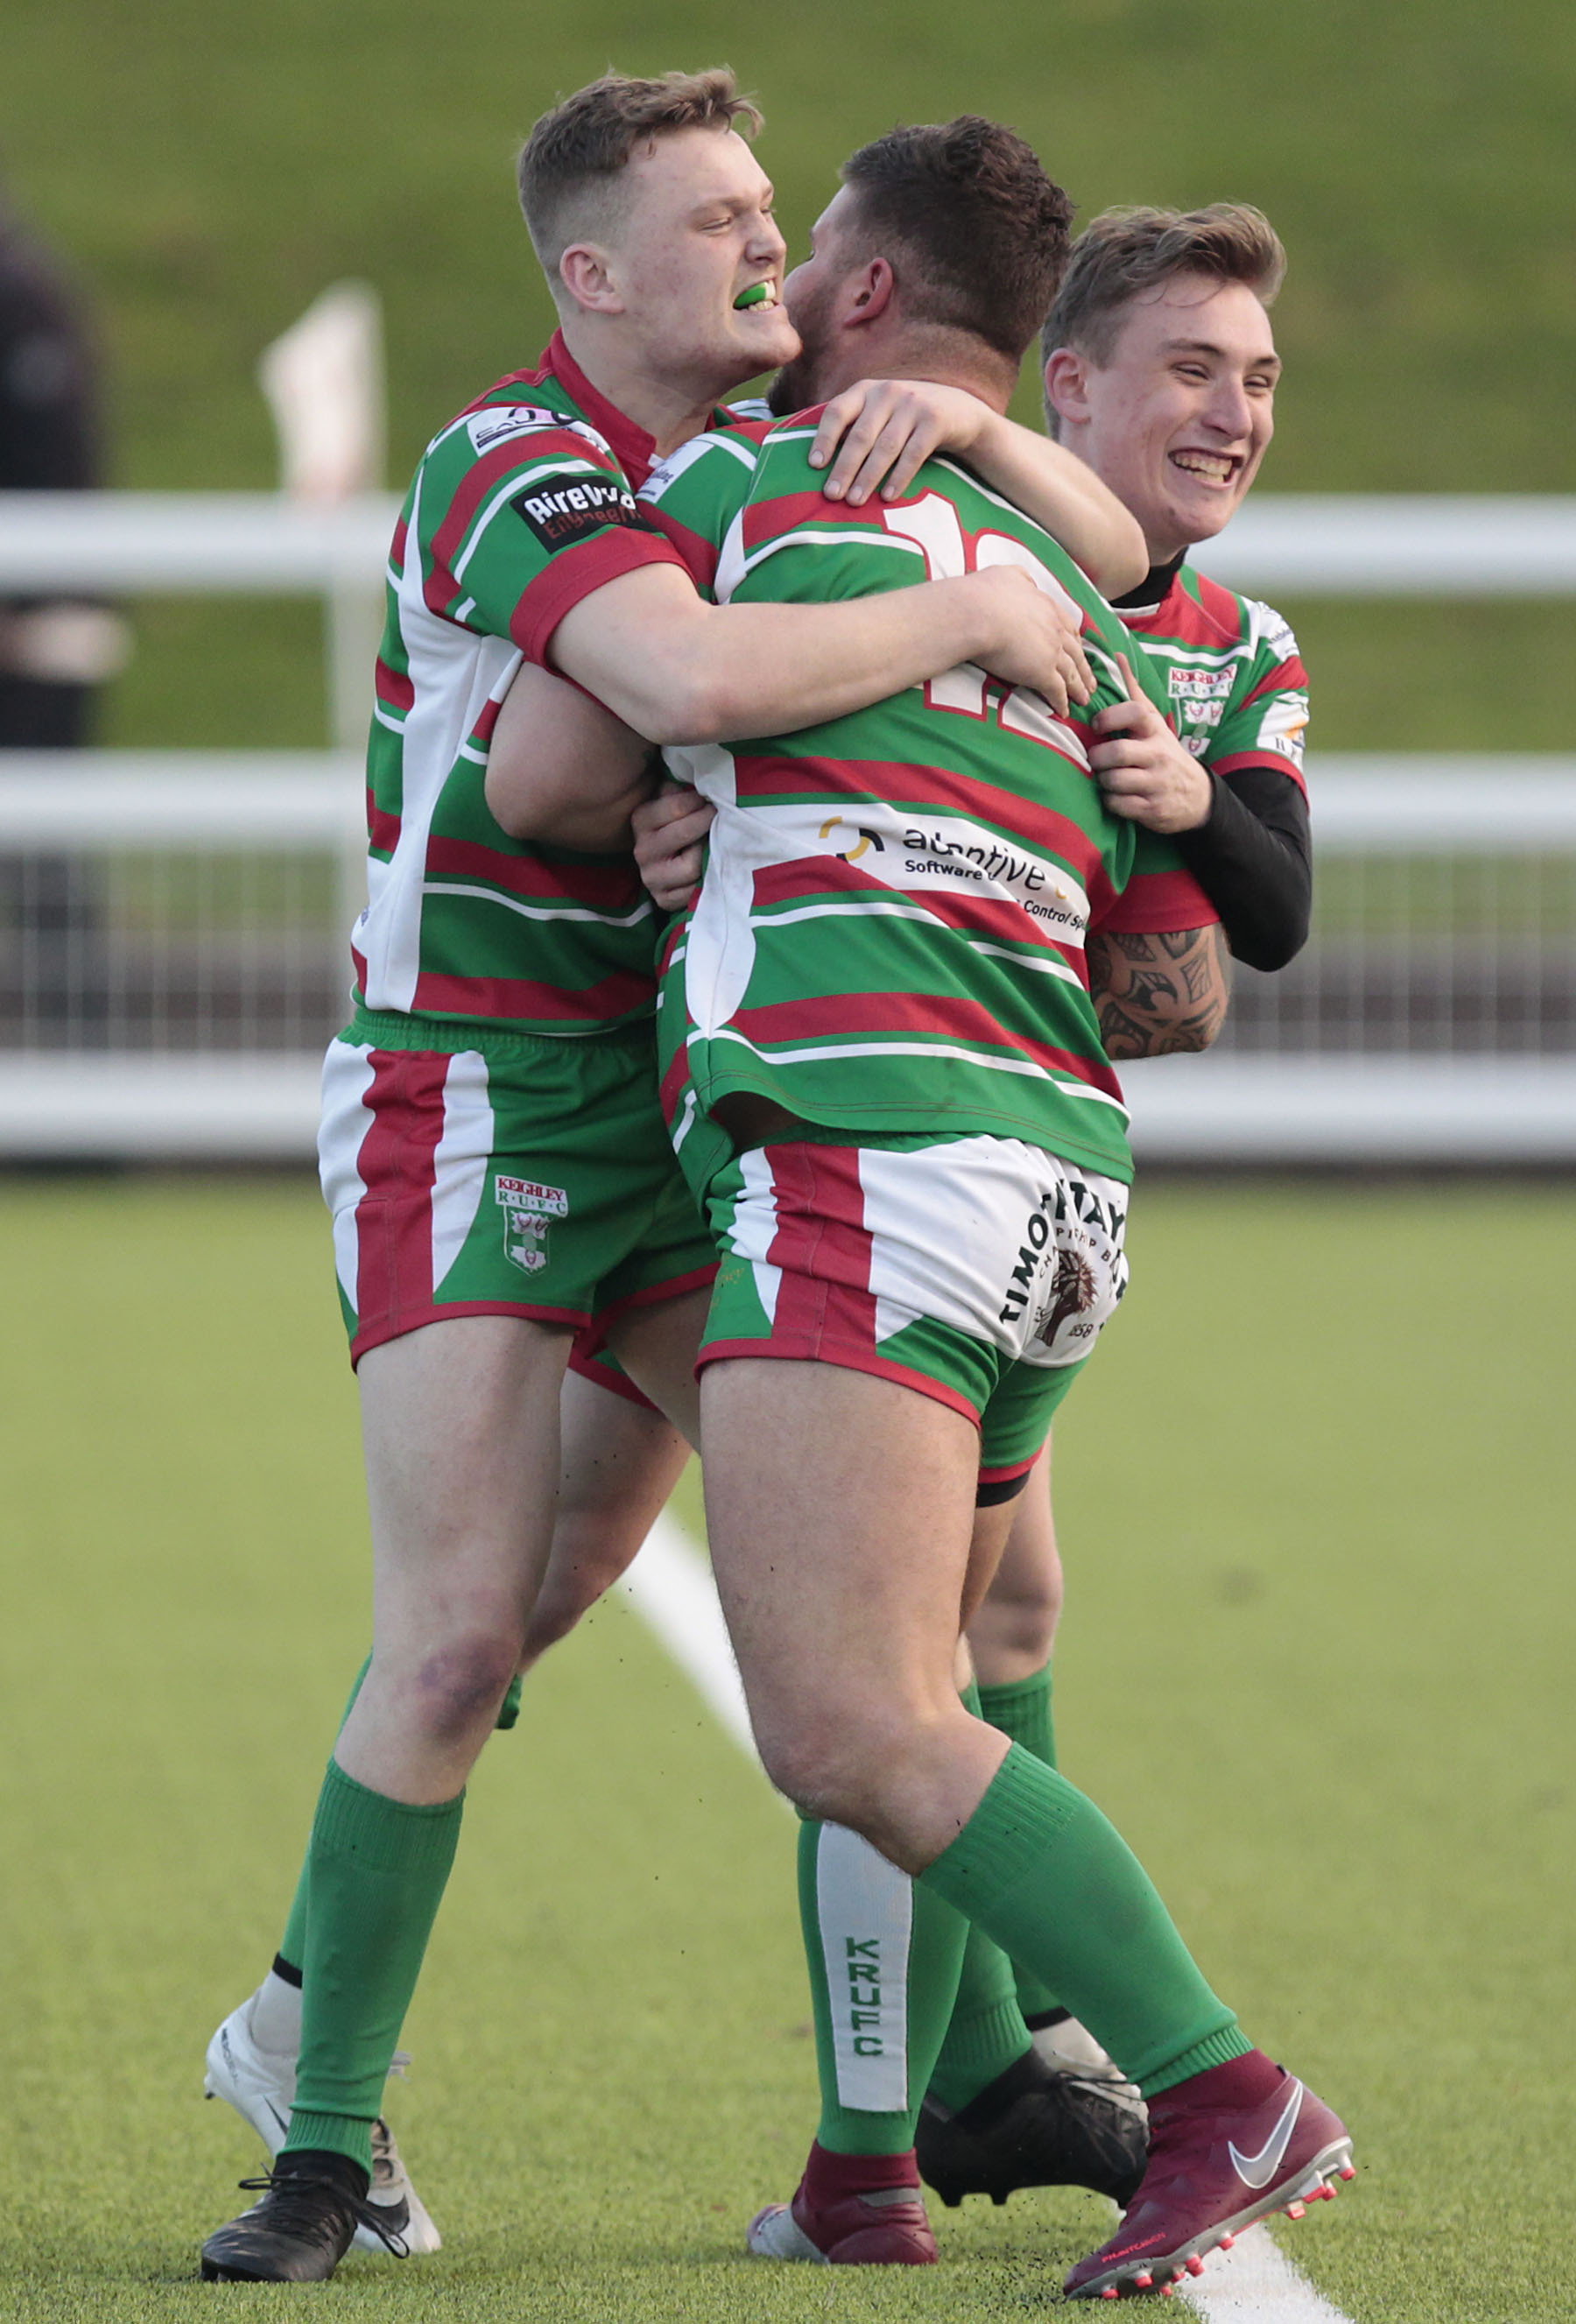 Alfie Seeley, left, scored a try in Keighley's defeat at Beverley. Picture: Charlie Perry